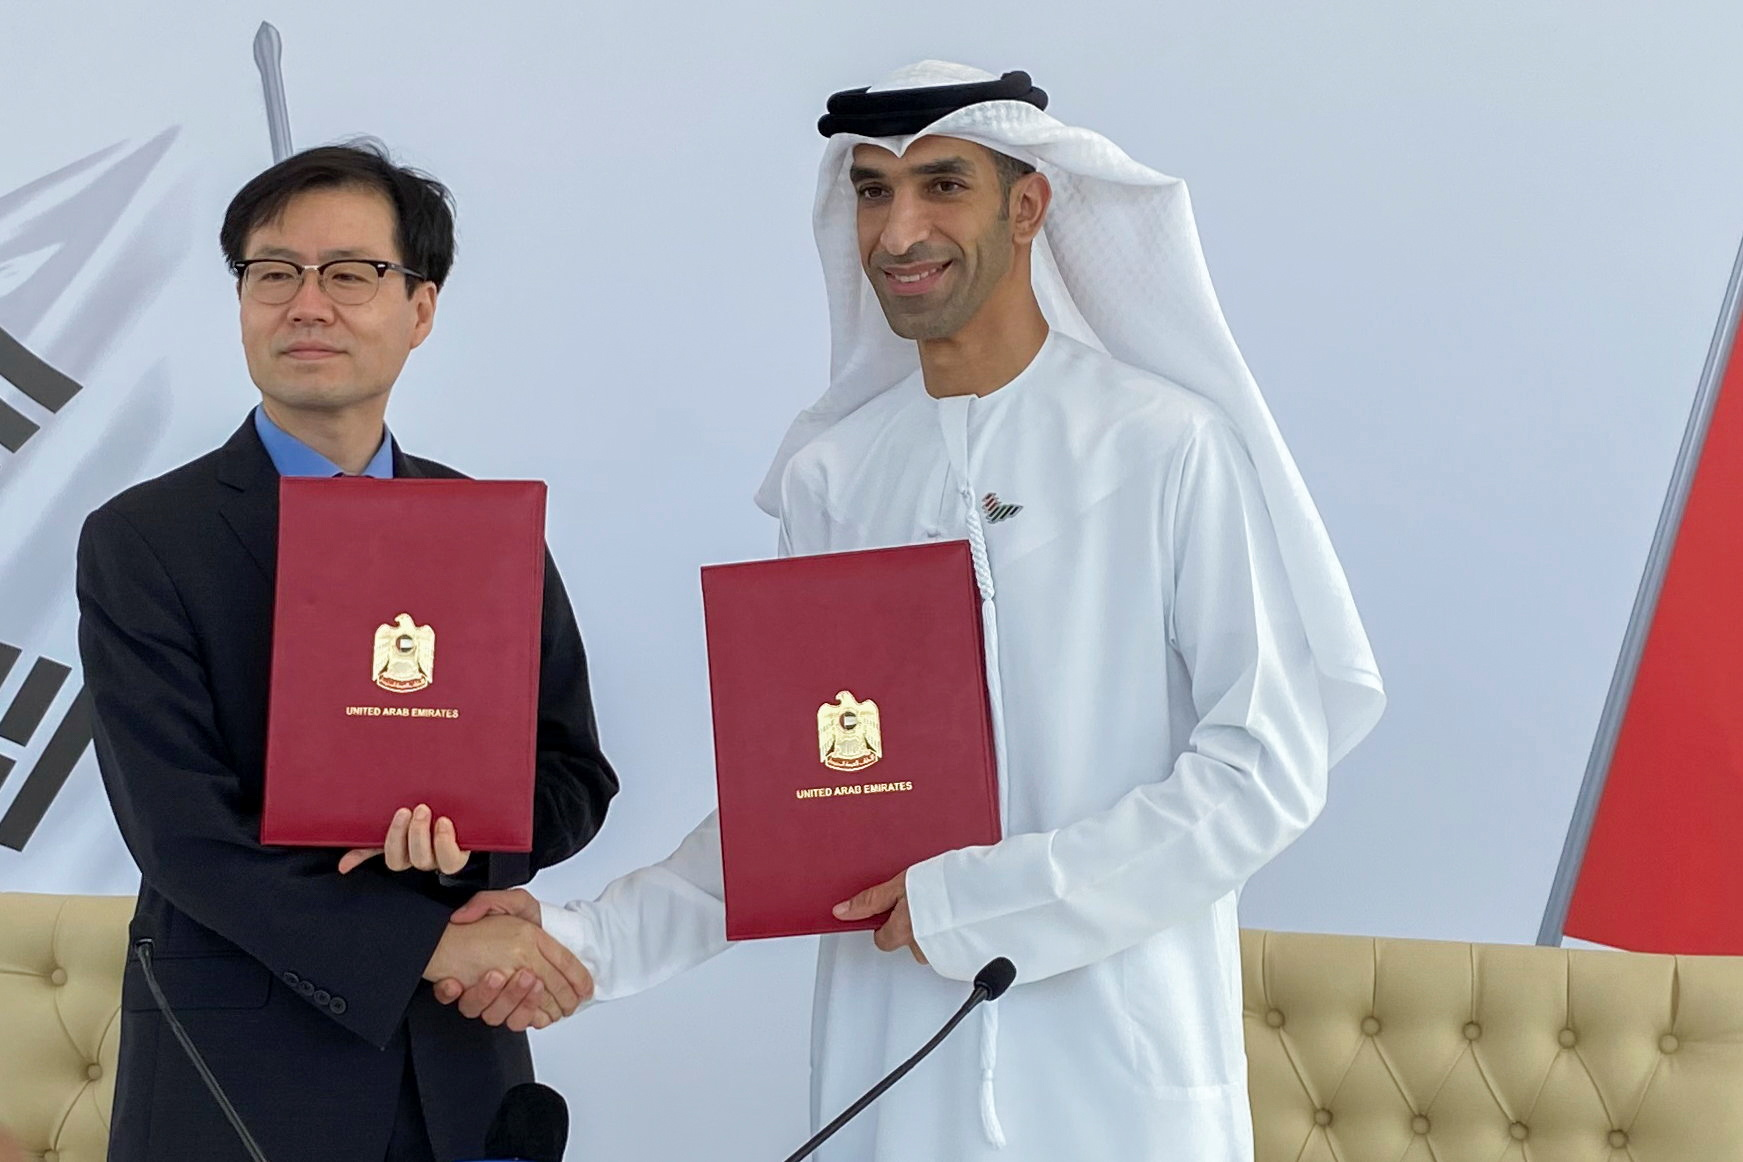 South Korean Trade Minister Yeo Han-koo and United Arab Emirates Minister of State for Foreign Trade Thani Al Zeyoudi shake hands after the announcement of the intent between the two nations to pursue a comprehensive economic partnership agreement (CEPA) in Dubai, United Arab Emirates, October 14, 2021. REUTERS/Alexander Cornwell